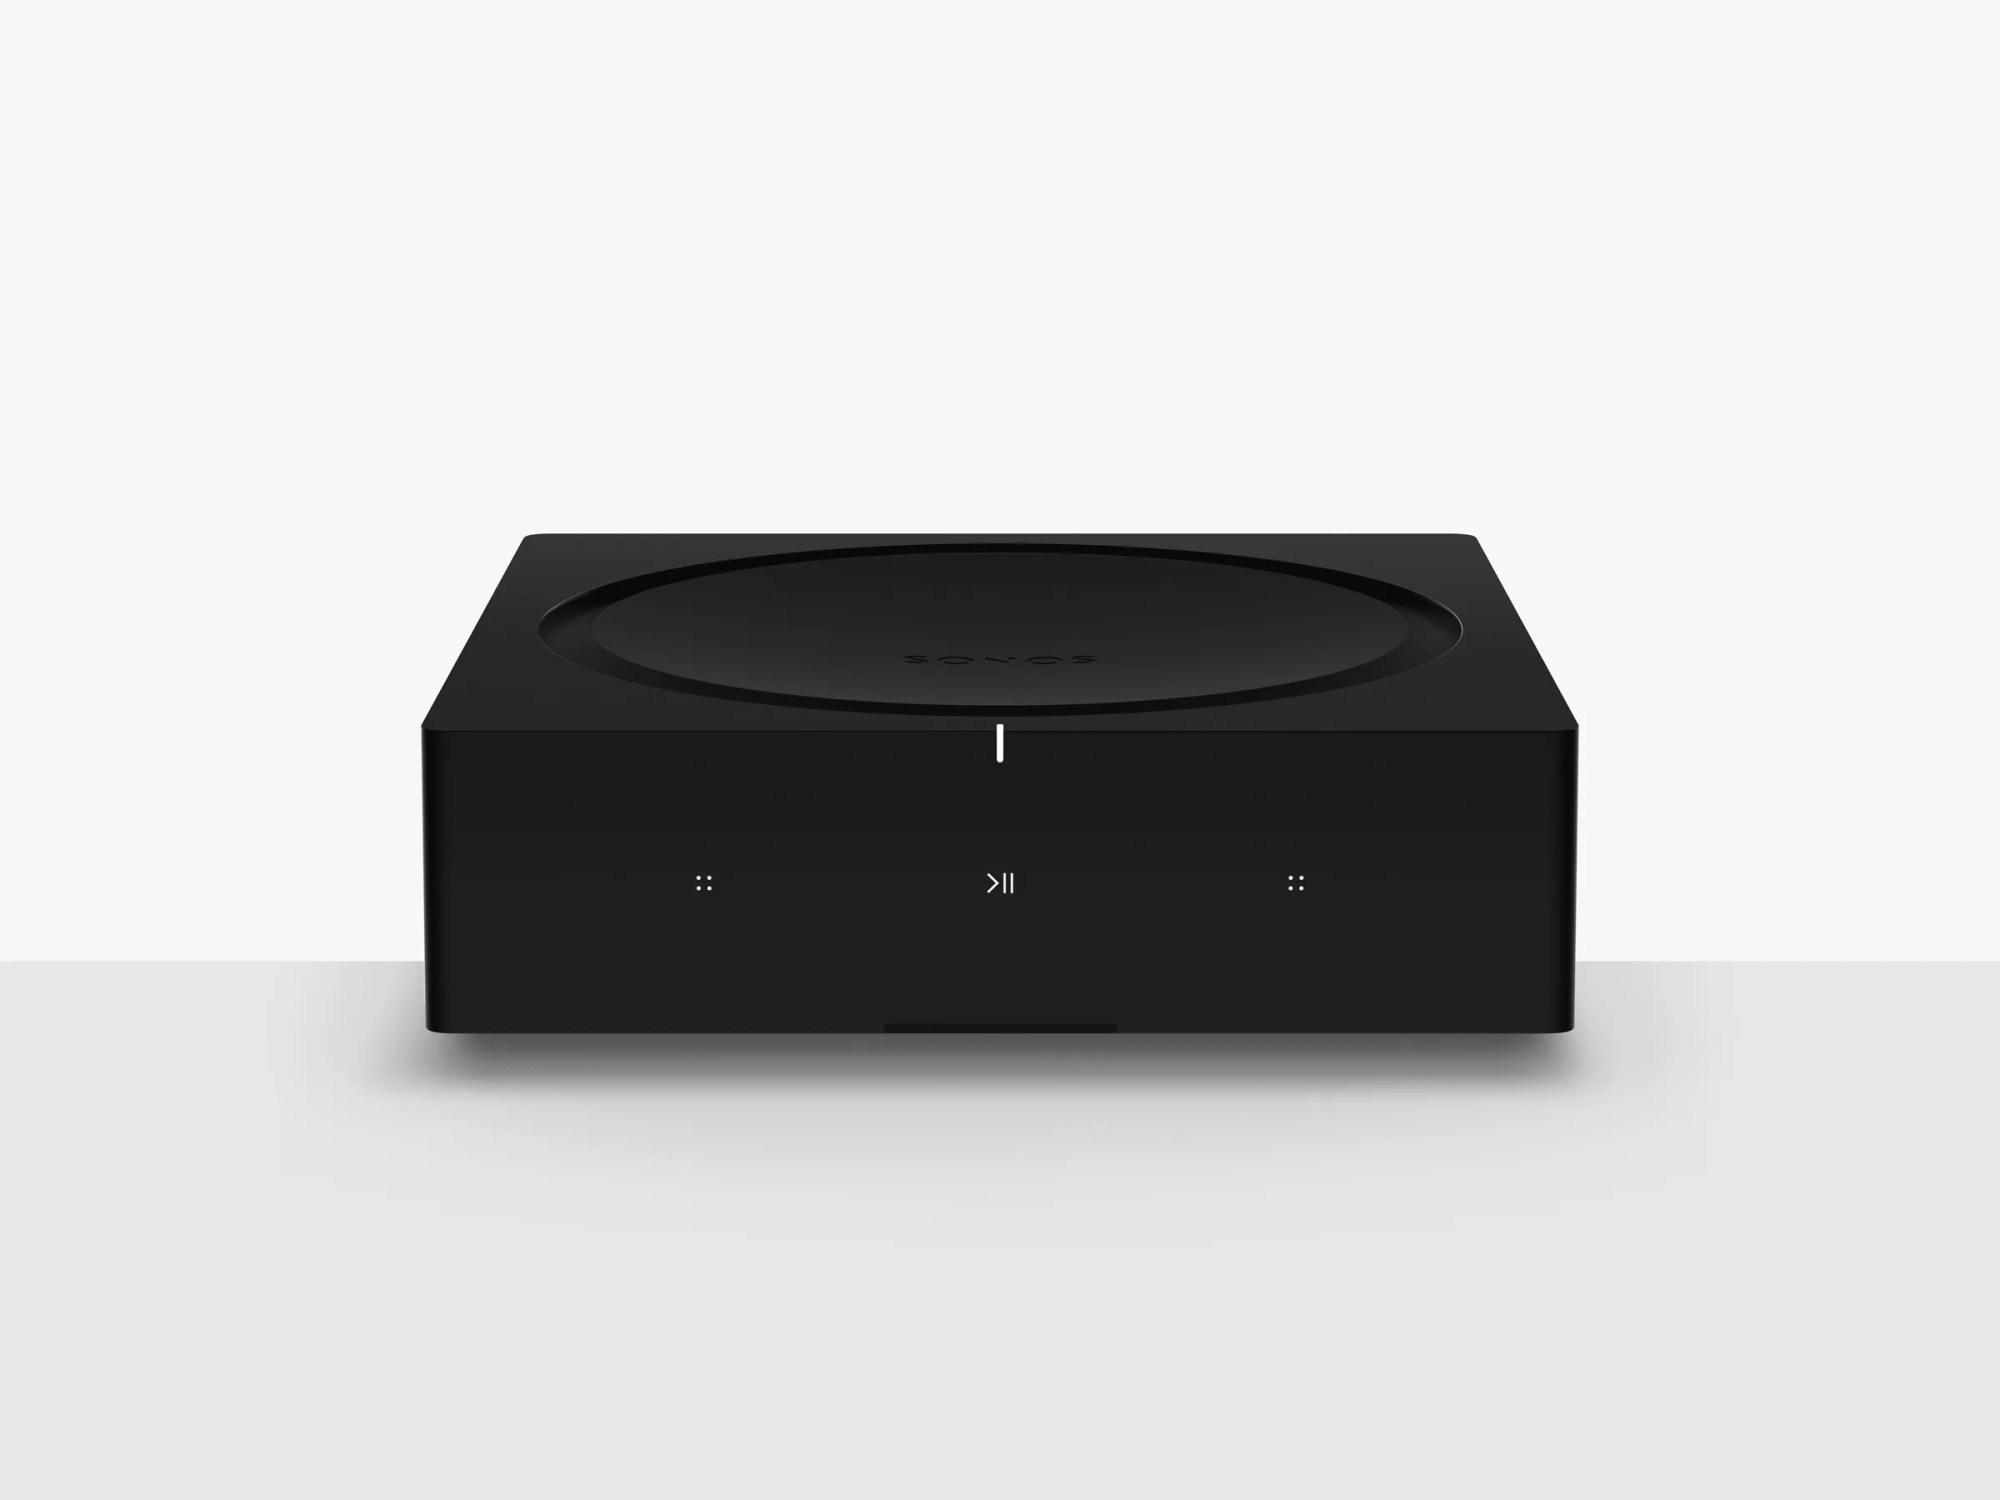 hight resolution of the new sonos amp will be available this fall to professional installers consumers will be able to pick one up in early 2019